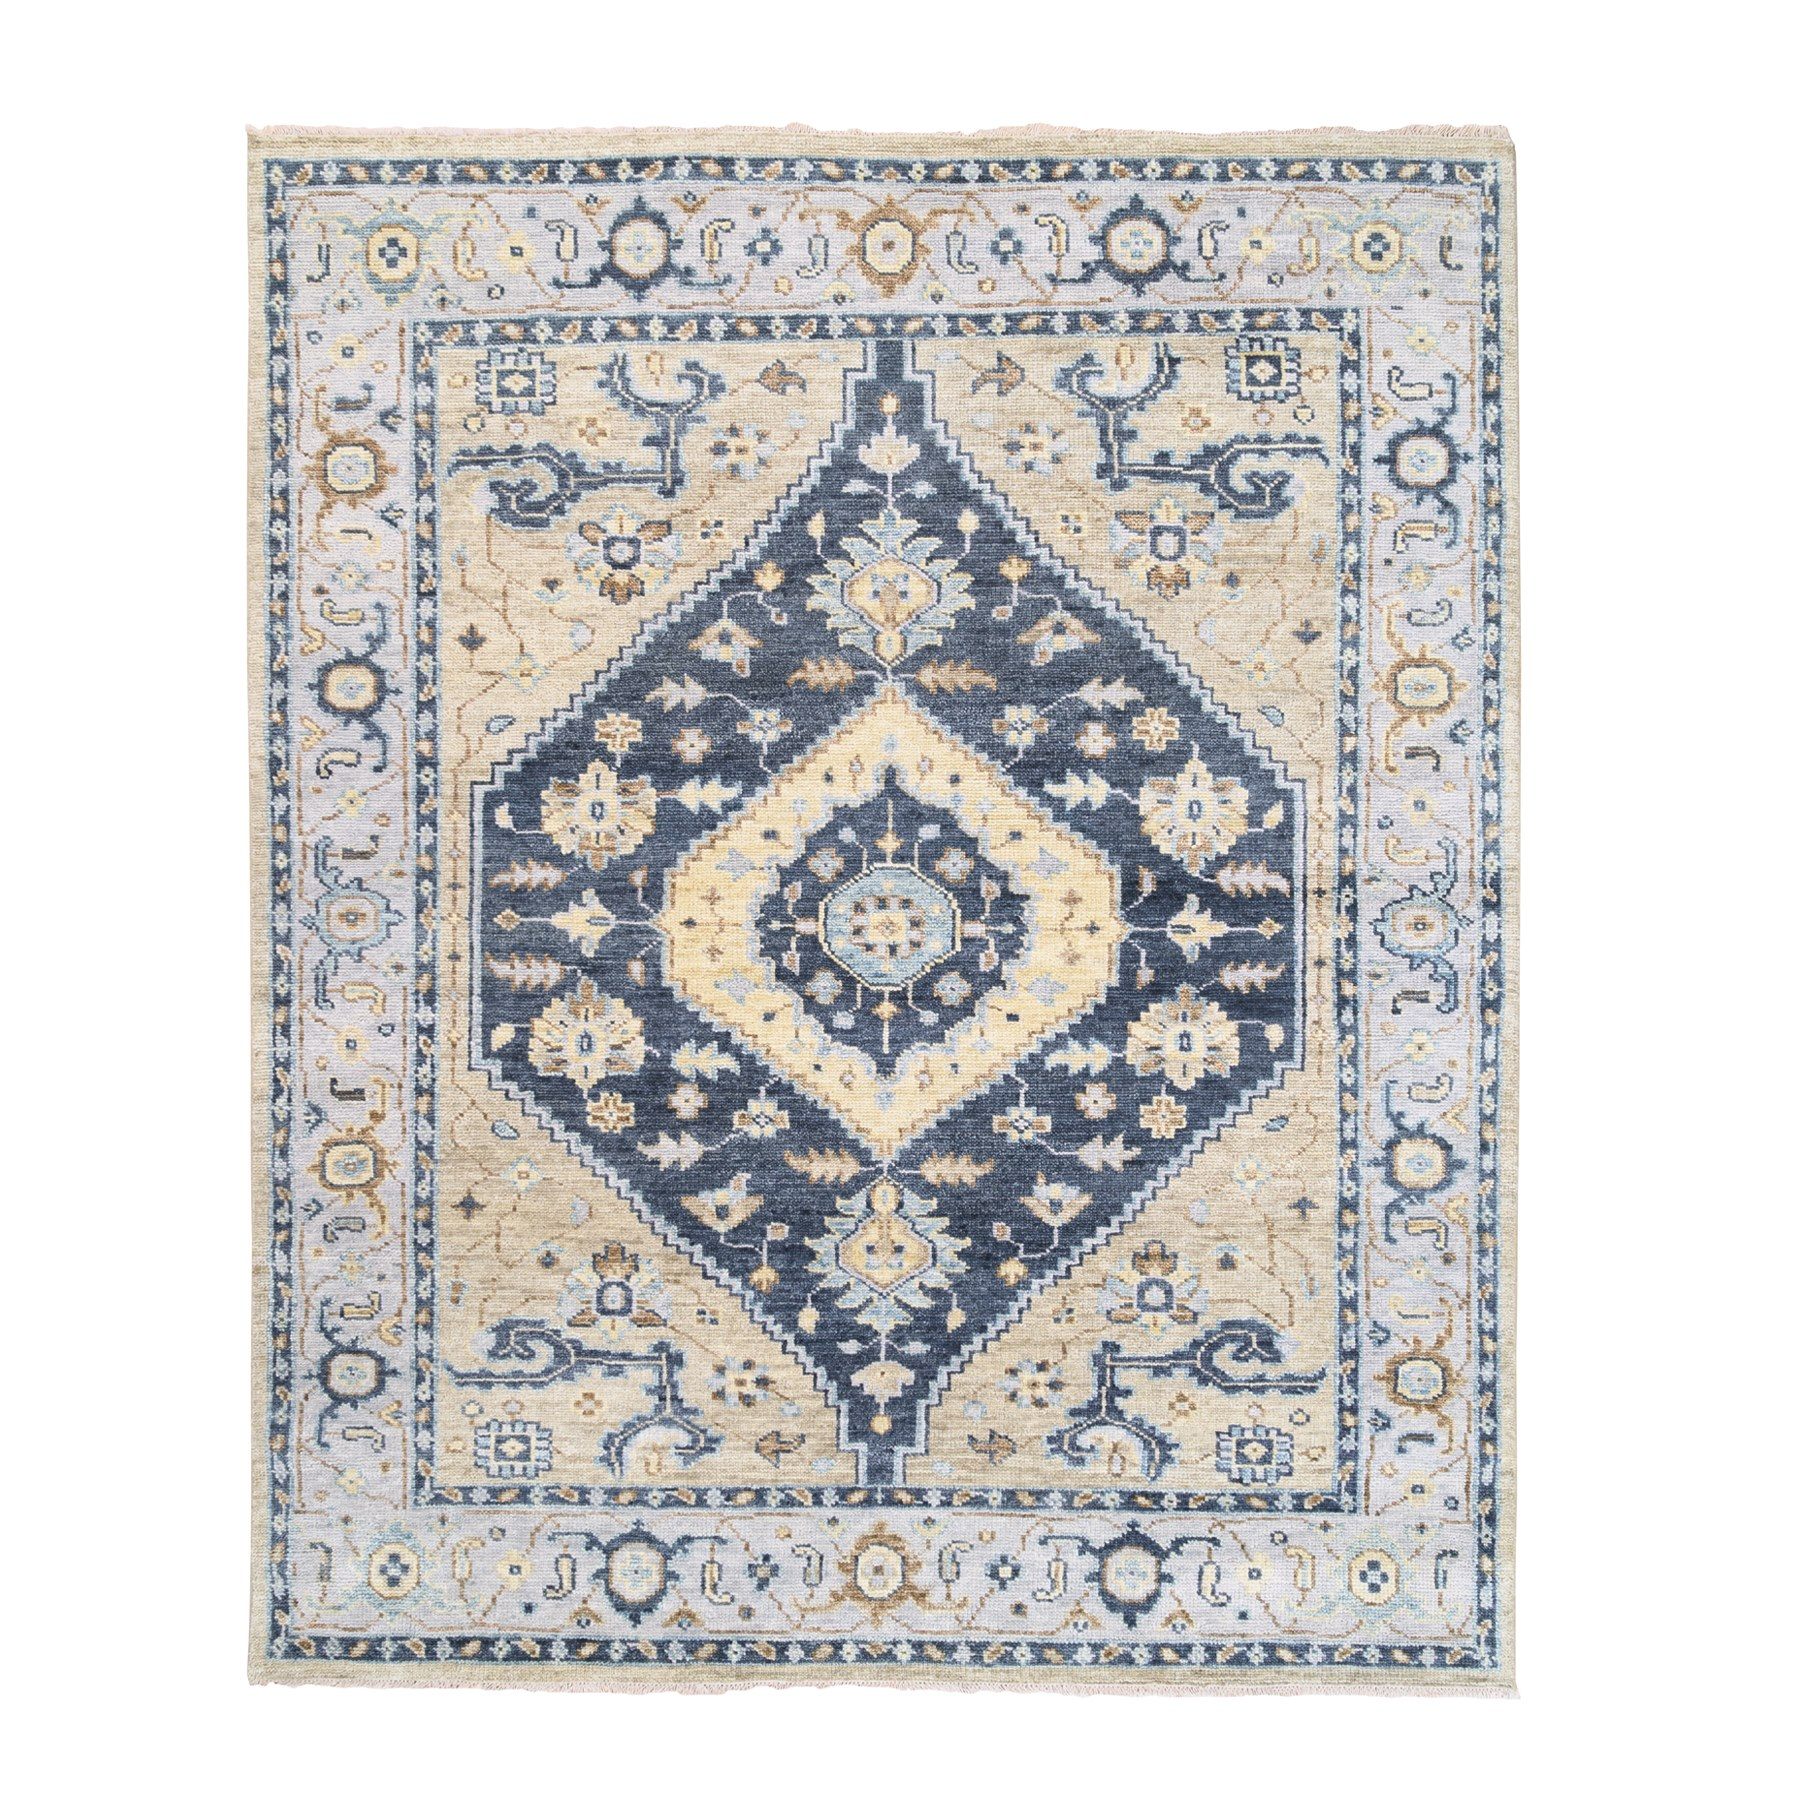 "8'2""x10' Navy Blue Supple Collection Bakshaish Design Soft Wool Oriental Hand Knotted Rug"